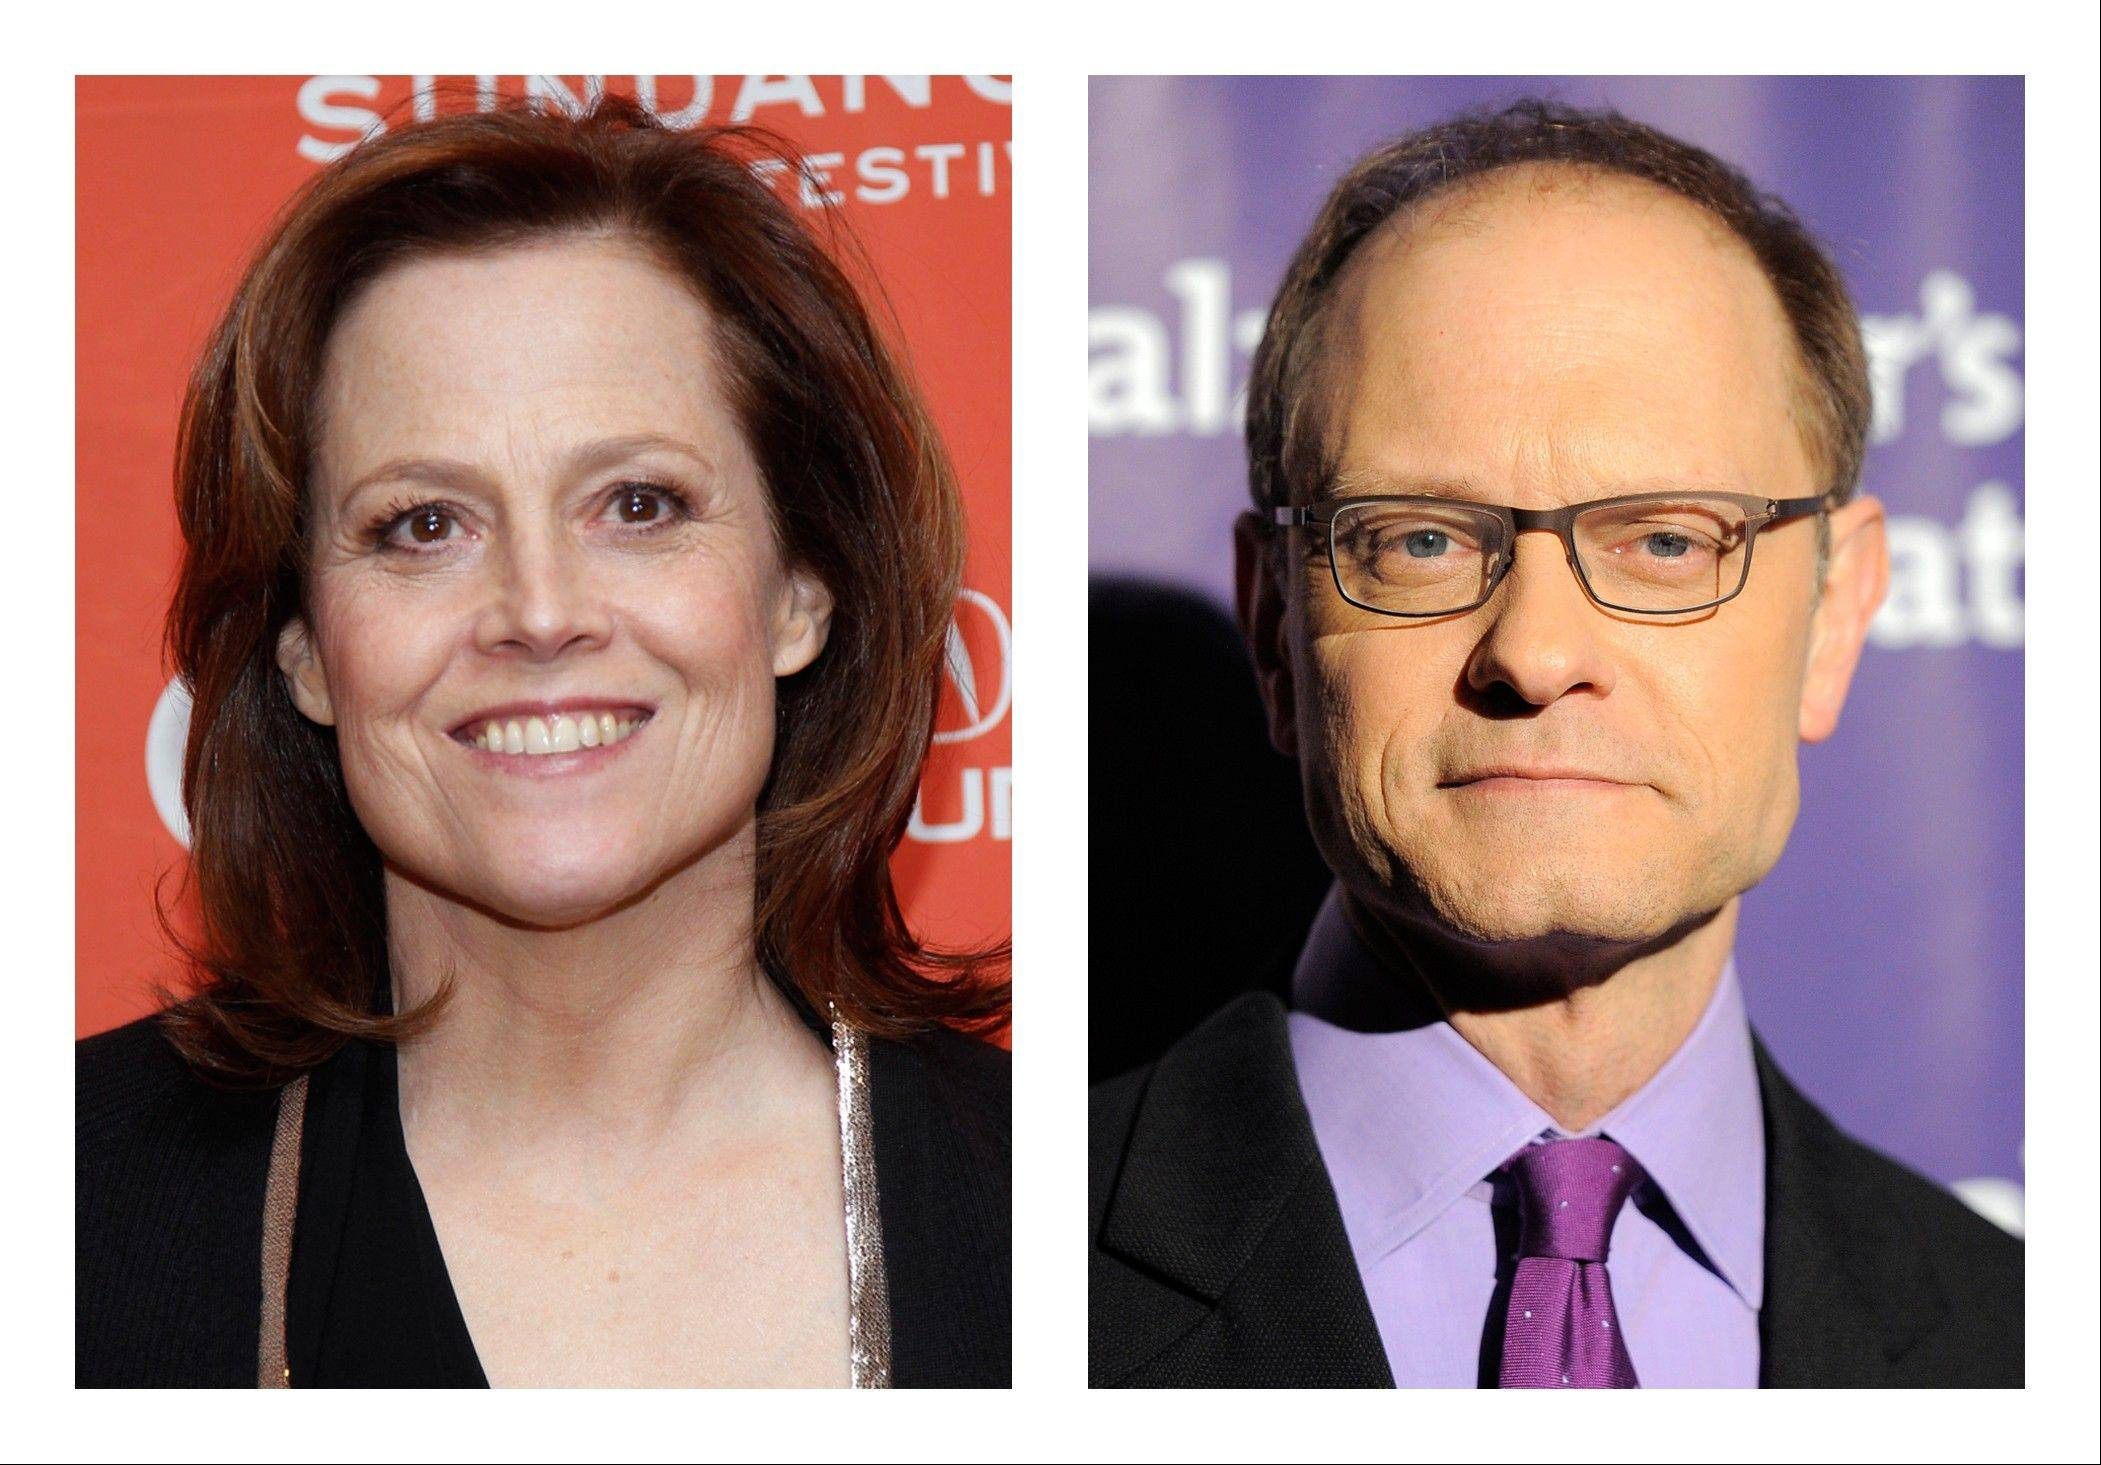 This combination of 2012 file photos shows actors Sigourney Weaver, left, and David Hyde Pierce. Weaver and Pierce are teaming up to play siblings as both make a return to the stage in a Chekhov-inspired play, Christopher Durang�s �Vanya and Sonia and Masha and Spike. � The play, which takes characters and themes from the Russian playwright and sets them in present day Pennsylvania, will start in fall 2012 at the McCarter Theatre in New Jersey before jumping to Lincoln Center Theater in New York in October 2012.